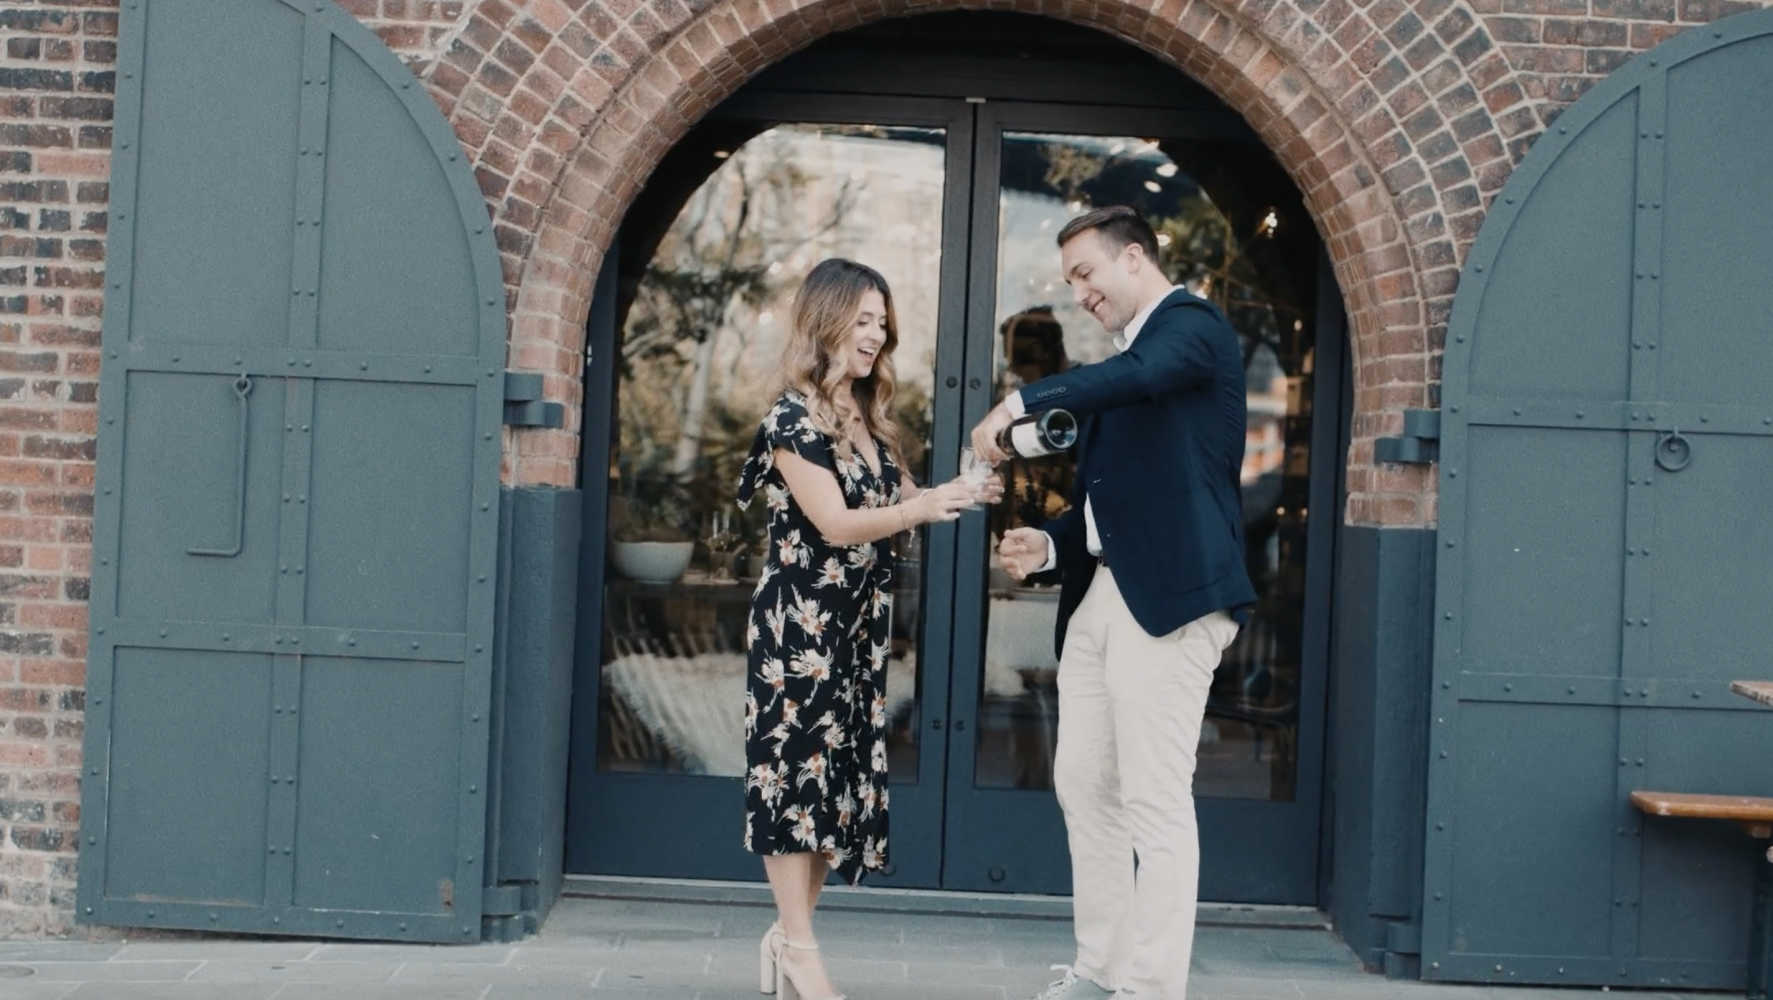 Chloe and Scott's Proposal Story Is The Best, Most Relatable Thing You'll Read All Week